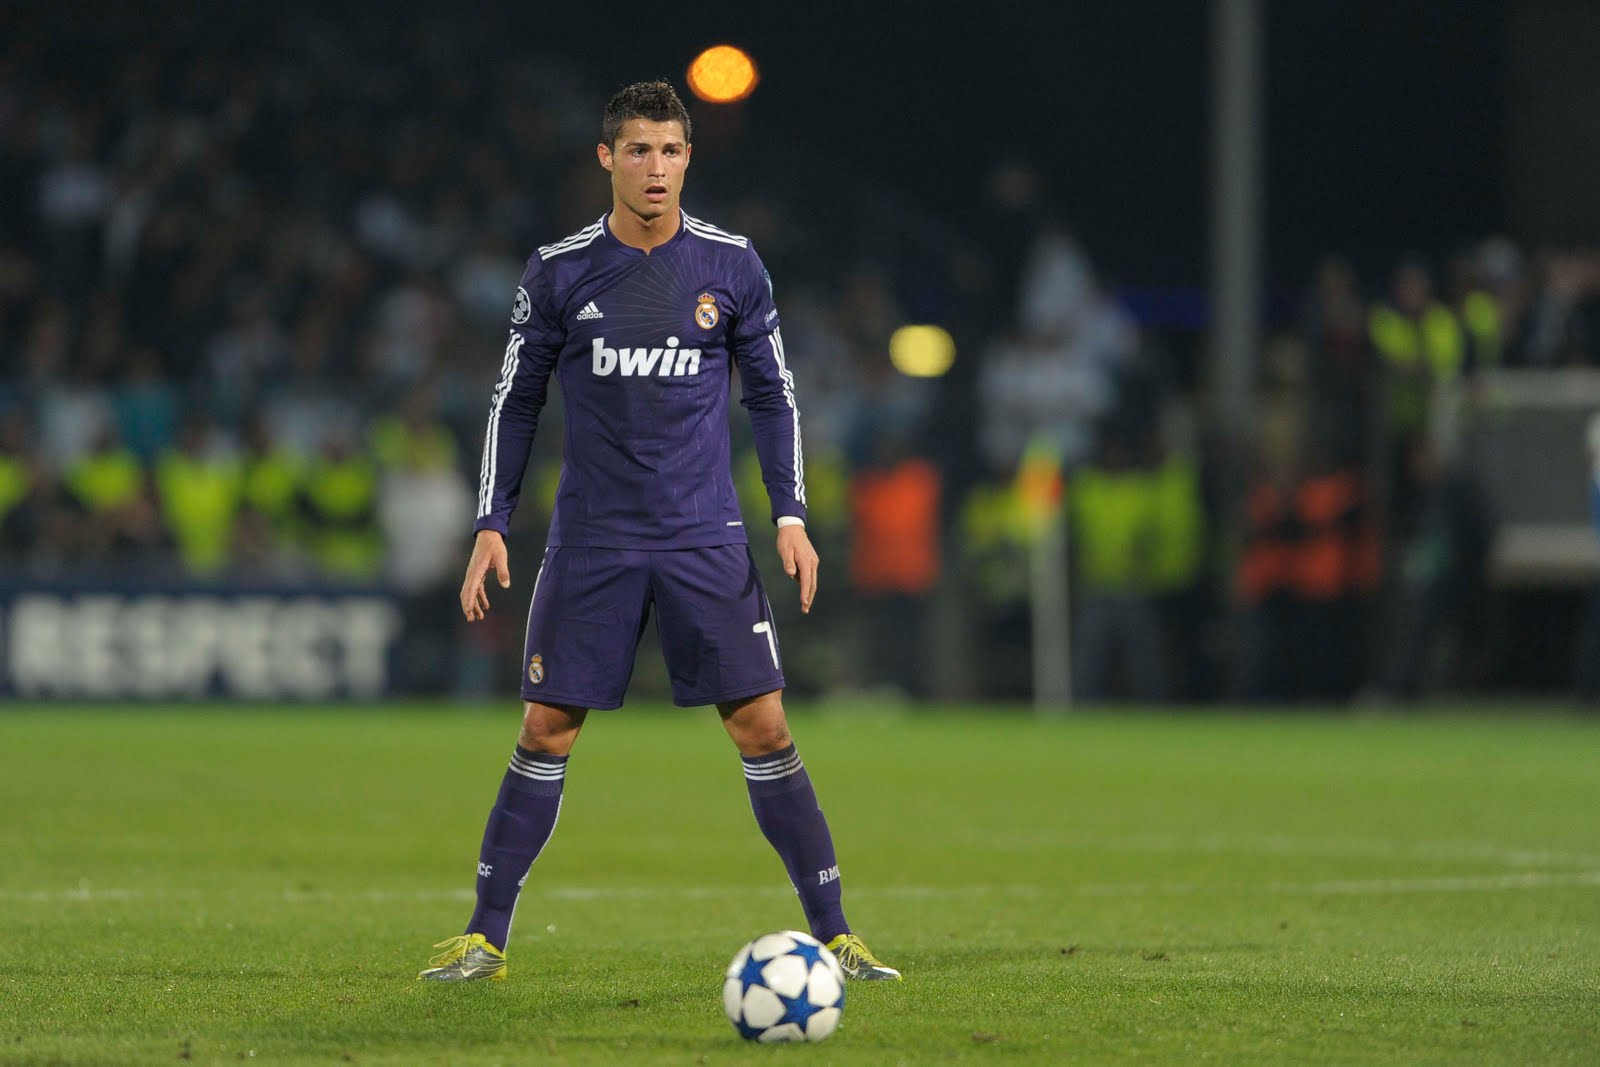 This Man Finally Revealed The Reason Why Ronaldo Does His Trademark